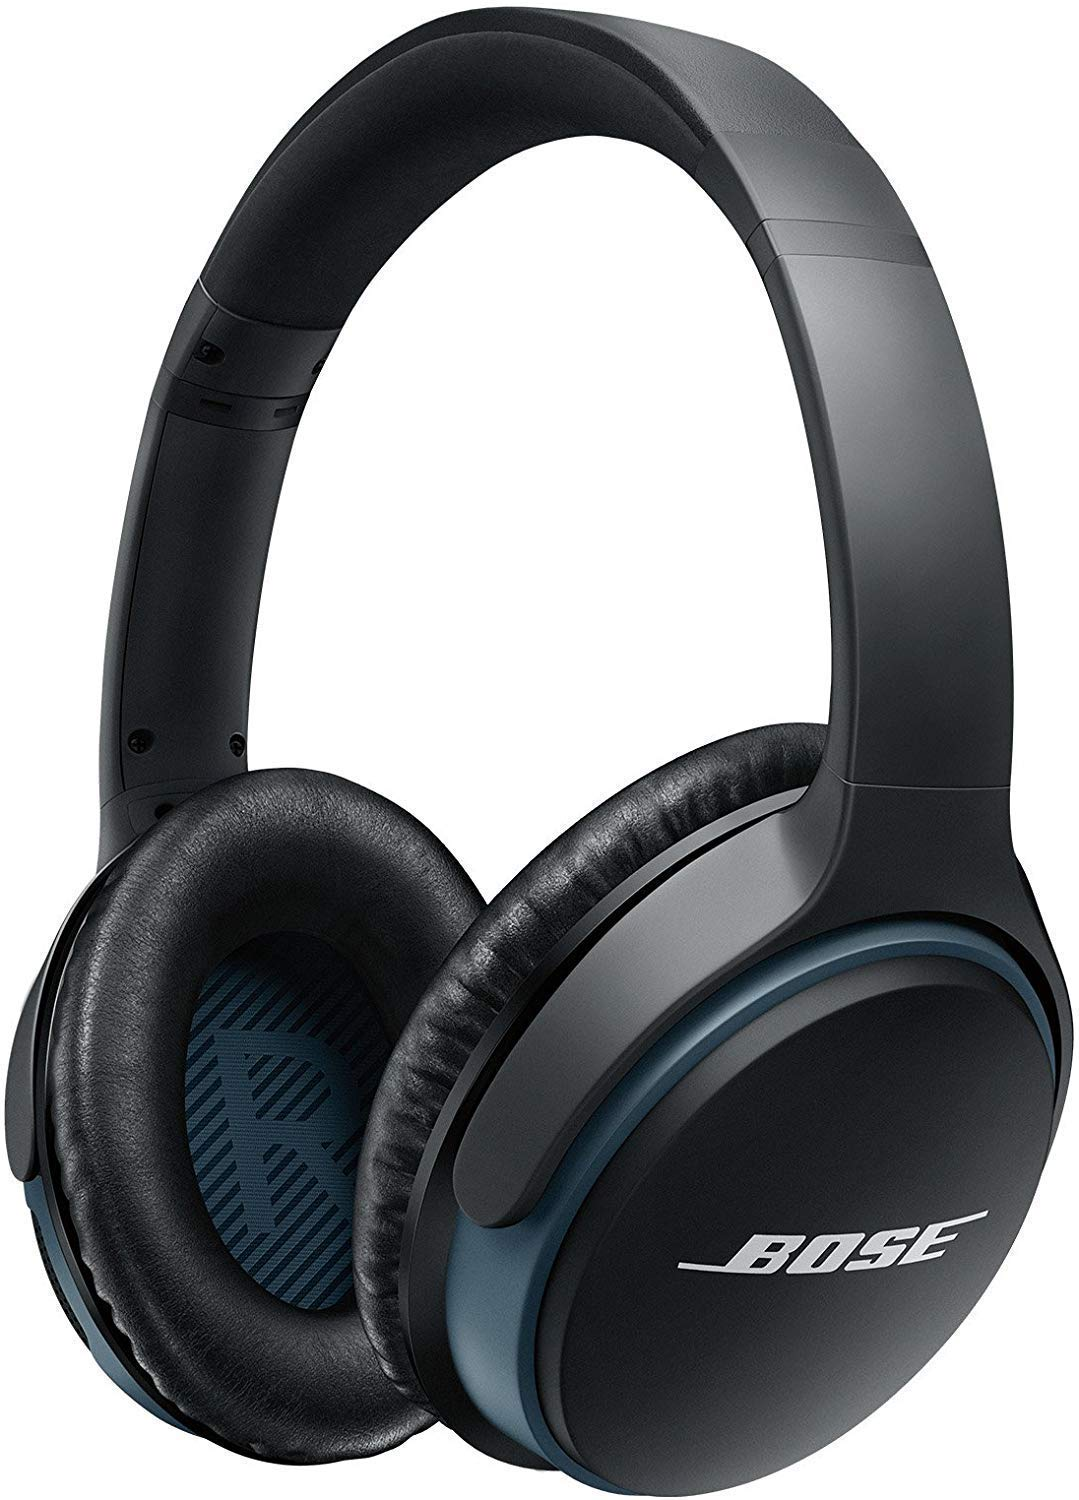 Bose Soundlink Wireless around Ear Headphones with Mic